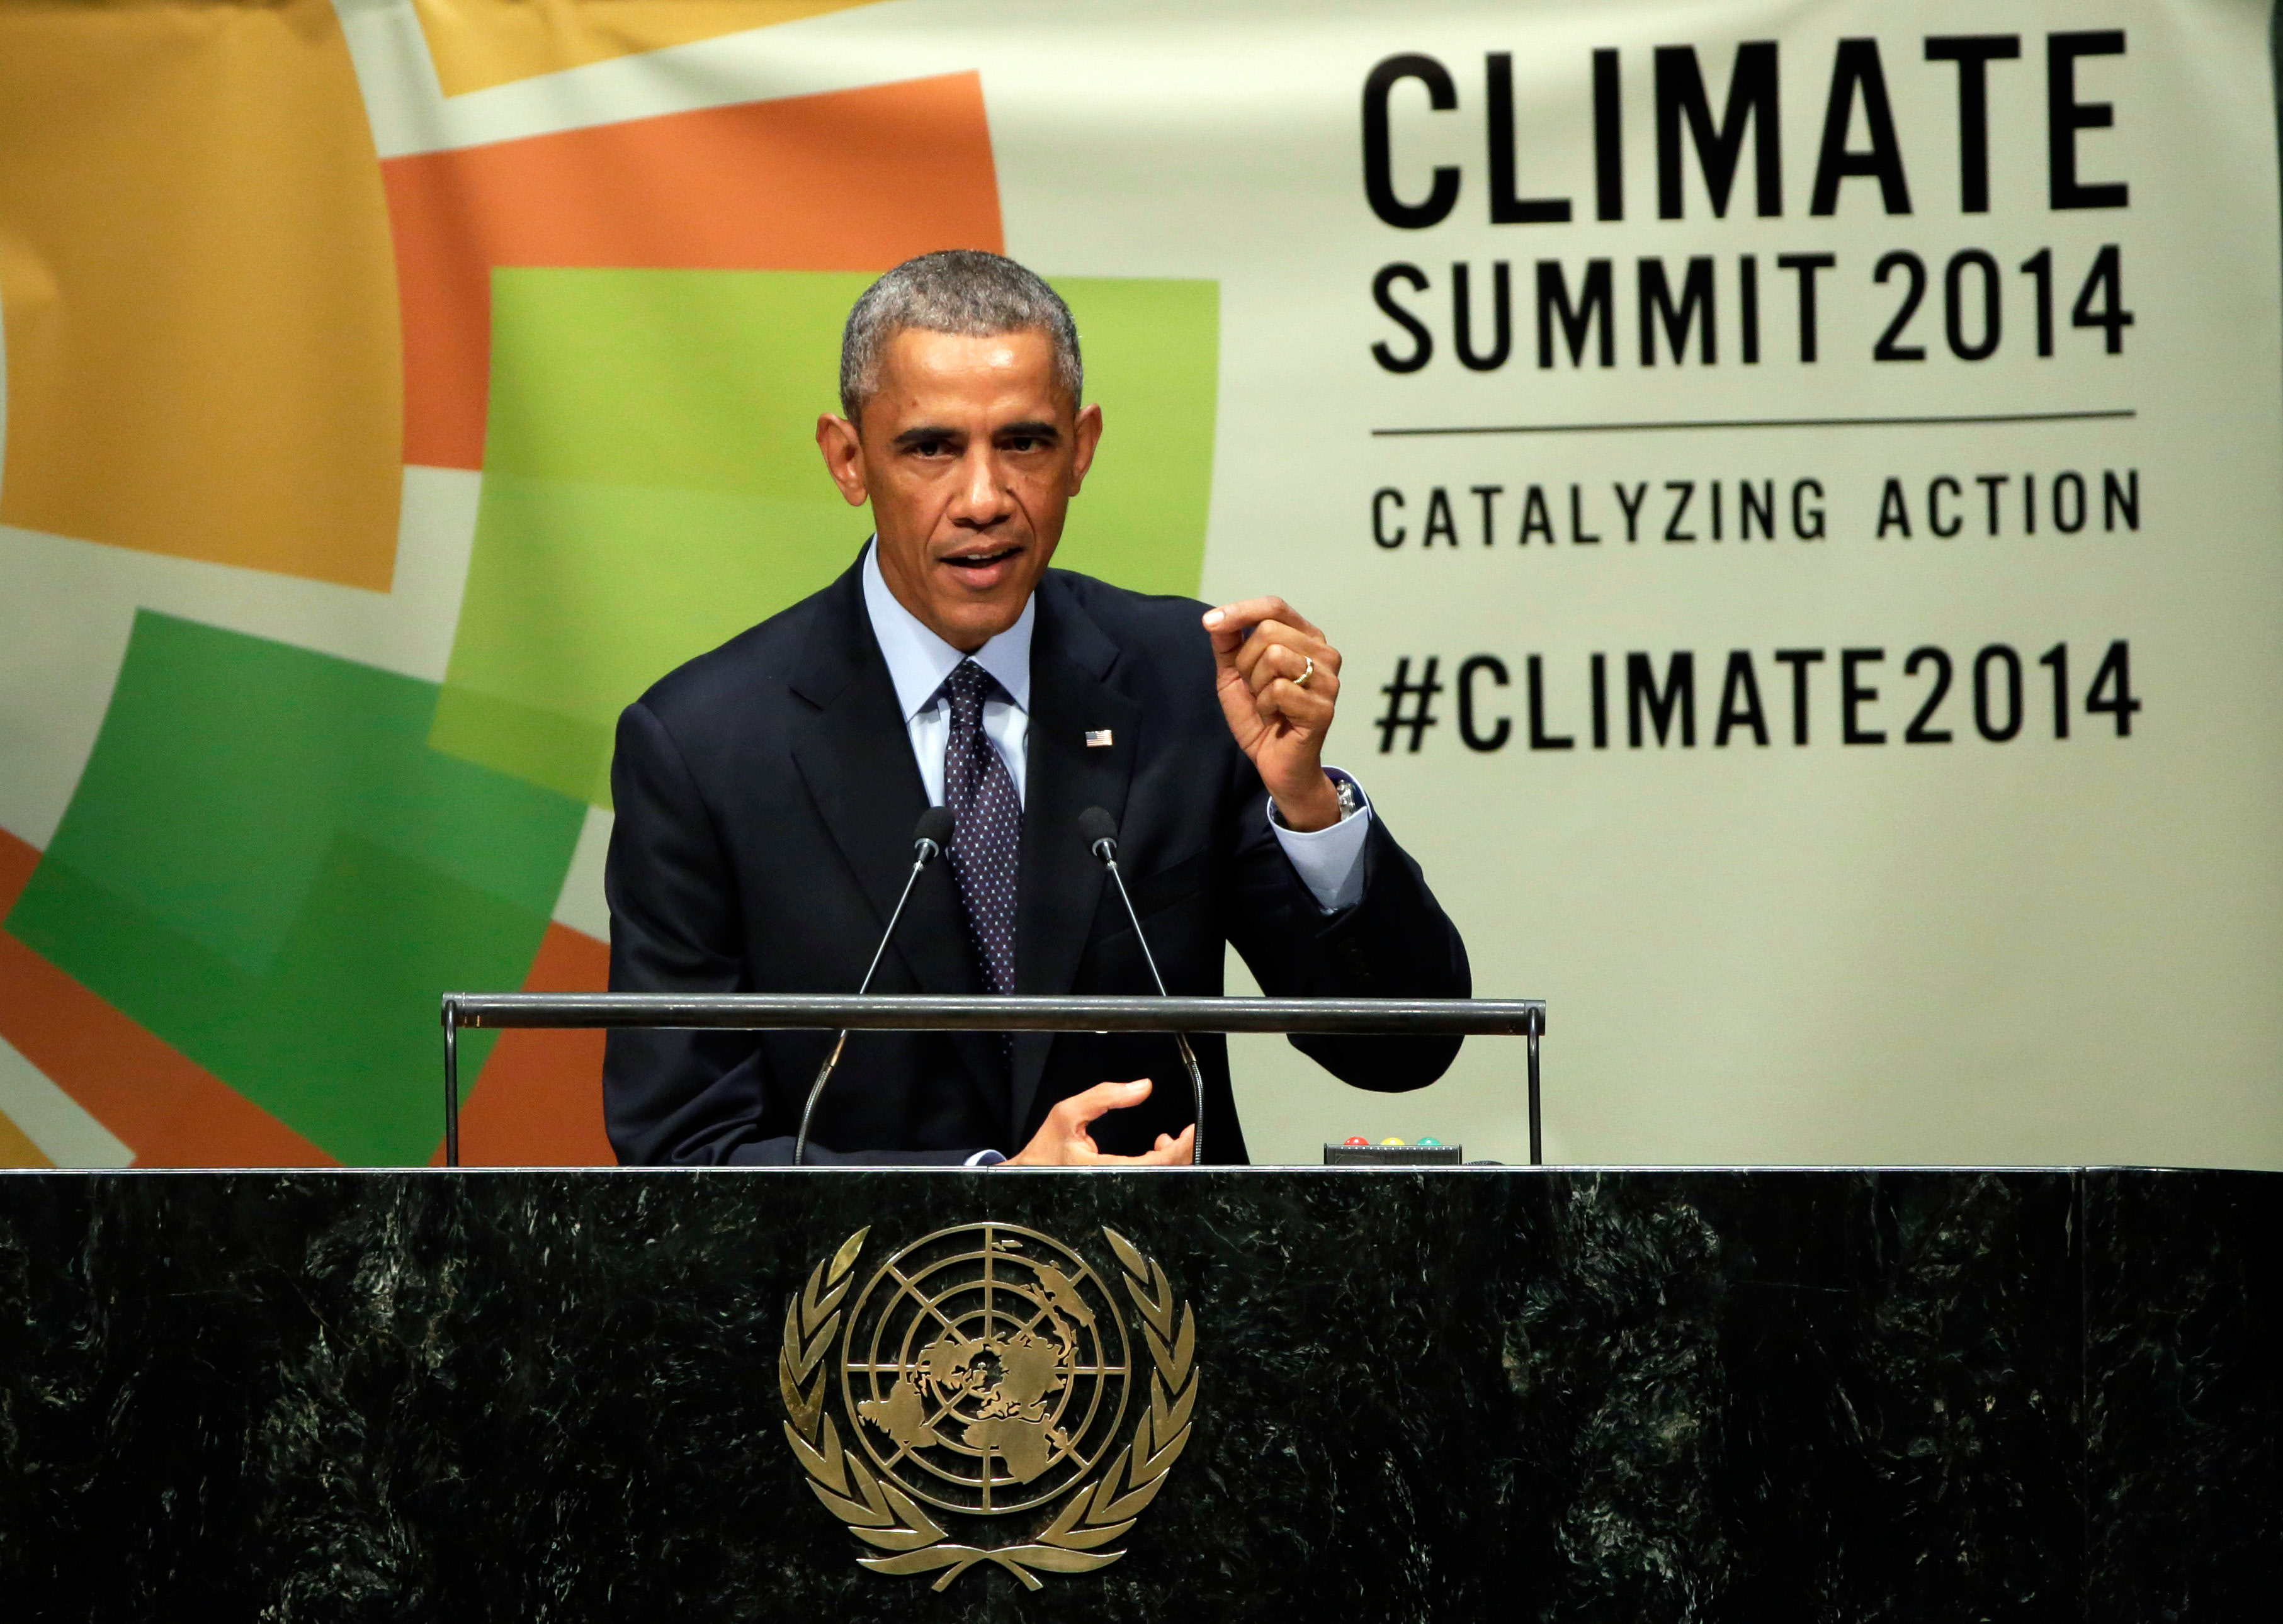 FILE - In this Sept. 23, 2014 file photo, President Barack Obama addresses the Climate Summit, at United Nations headquarters. President Barack Obamas ambitious efforts to combat global warming face their biggest trial yet as Republicans take full control of Congress in 2015. Republicans have promised to start fast and forceful, sending Obama a barrage of bills to roll back his environmental rules and force his hand on energy development. Its the first order of business for GOP leaders, who will be able to send bills to Obamas desk unimpeded by Senate Democrats for the first time in Obamas presidency. (AP Photo/Richard Drew, File)